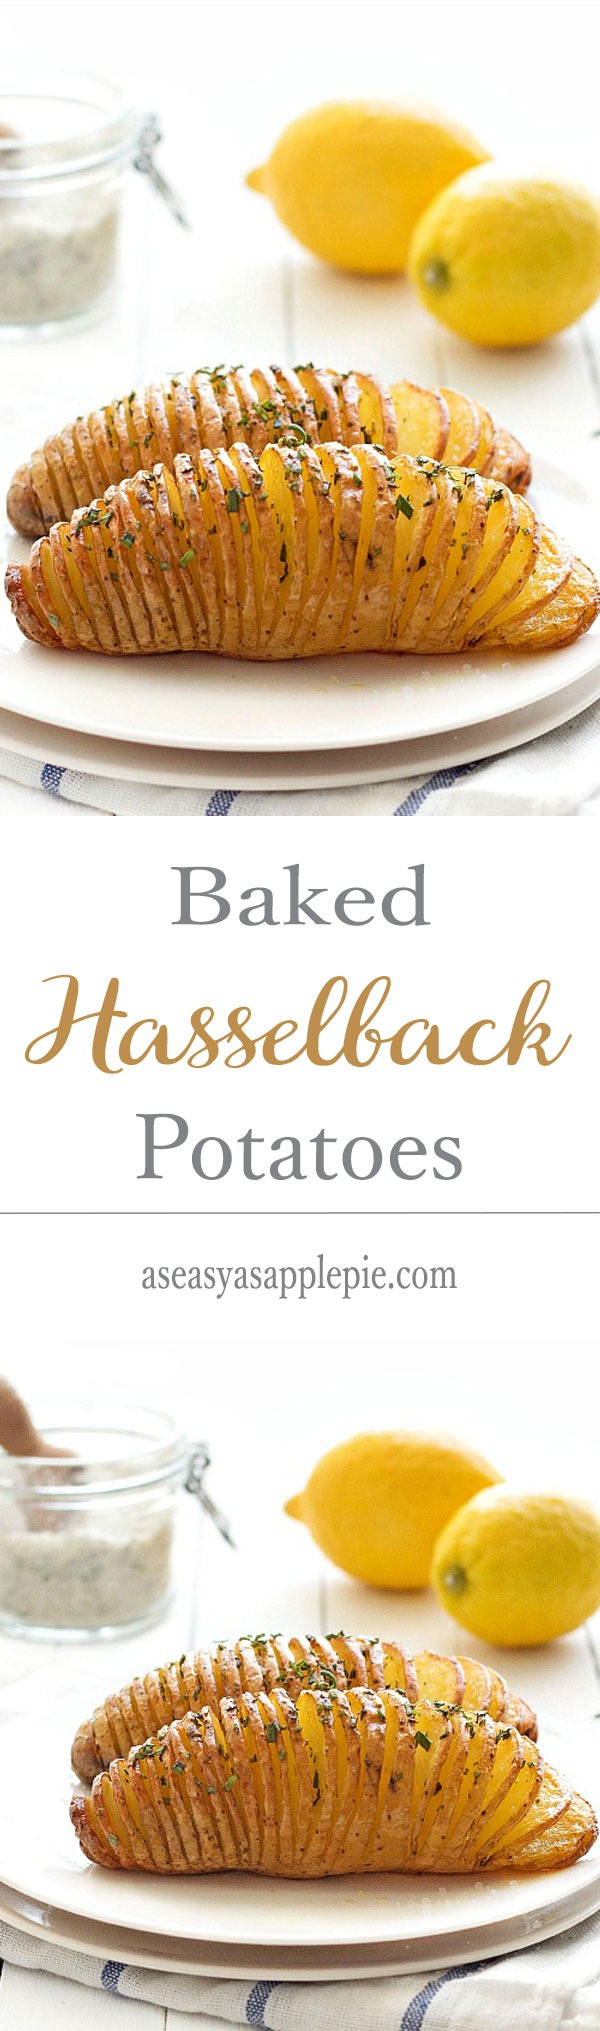 Baked hasselback potatoes are crispy and golden on the outside, soft, creamy and loaded with flavor on the inside.